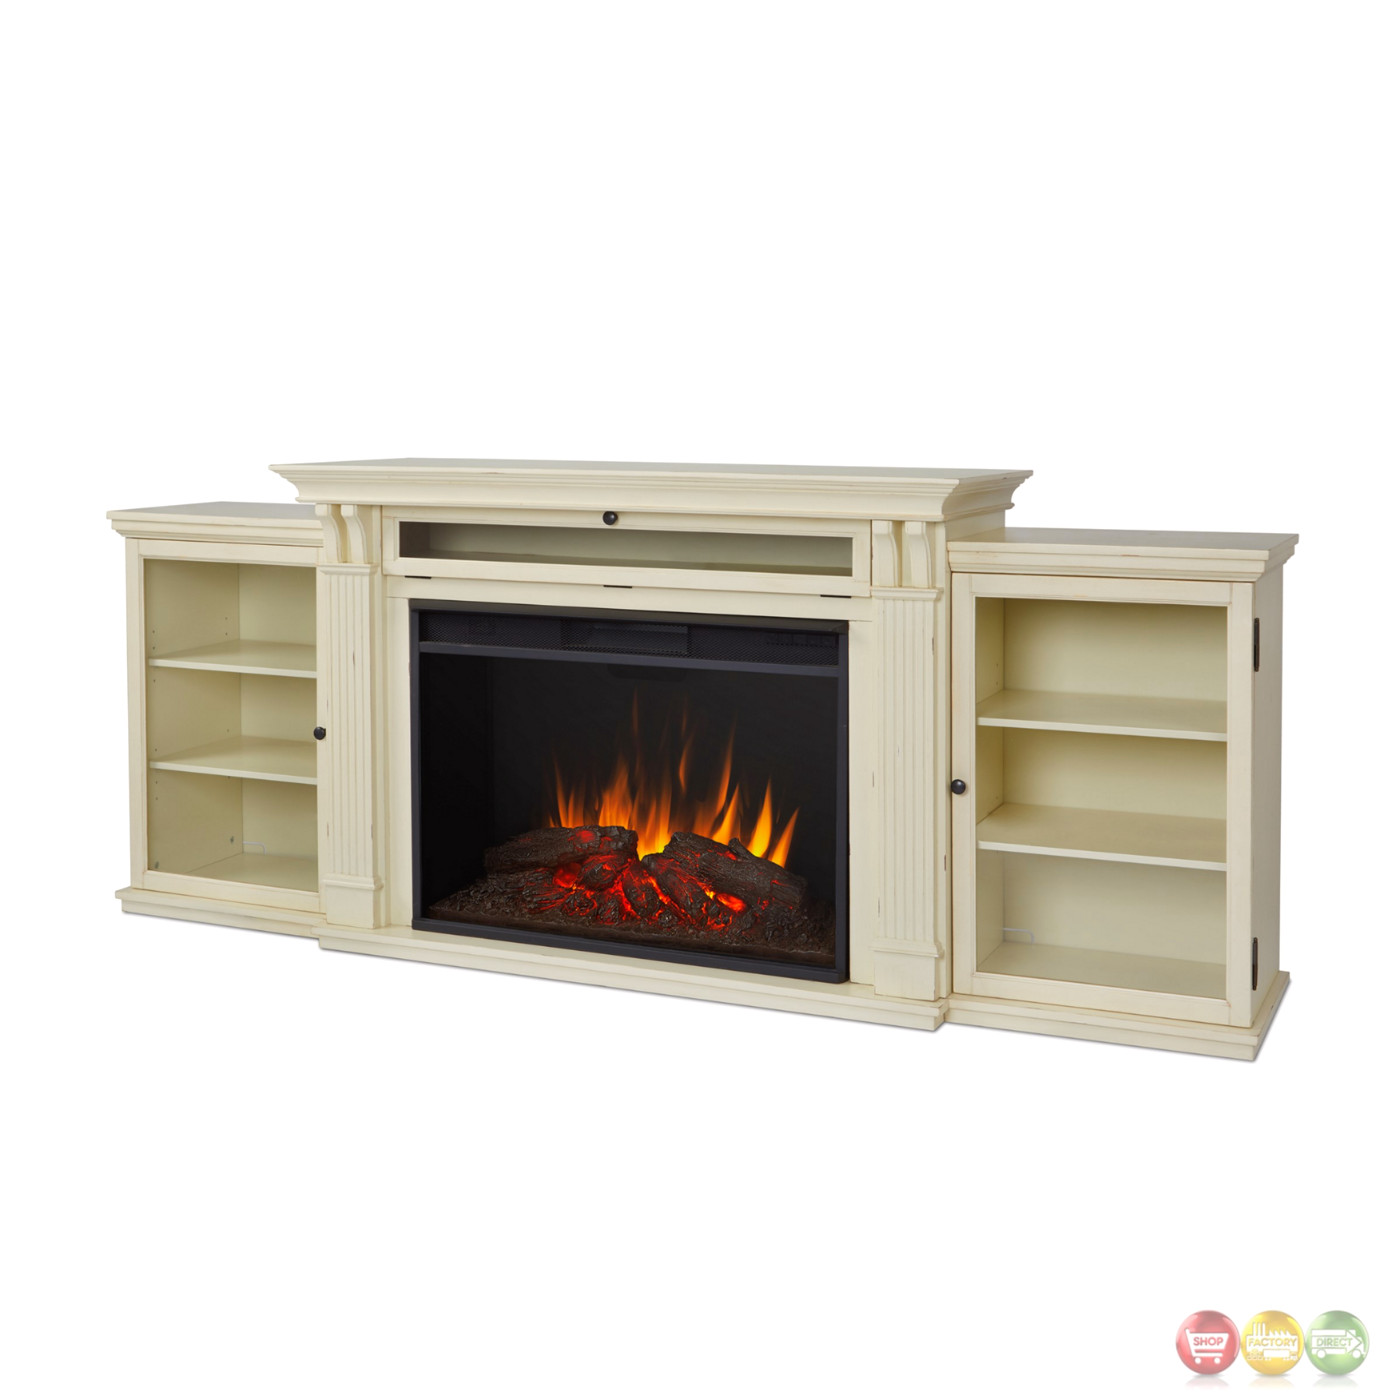 Tracey Grand Entertainment Center Electric Fireplace In Black, 84x35